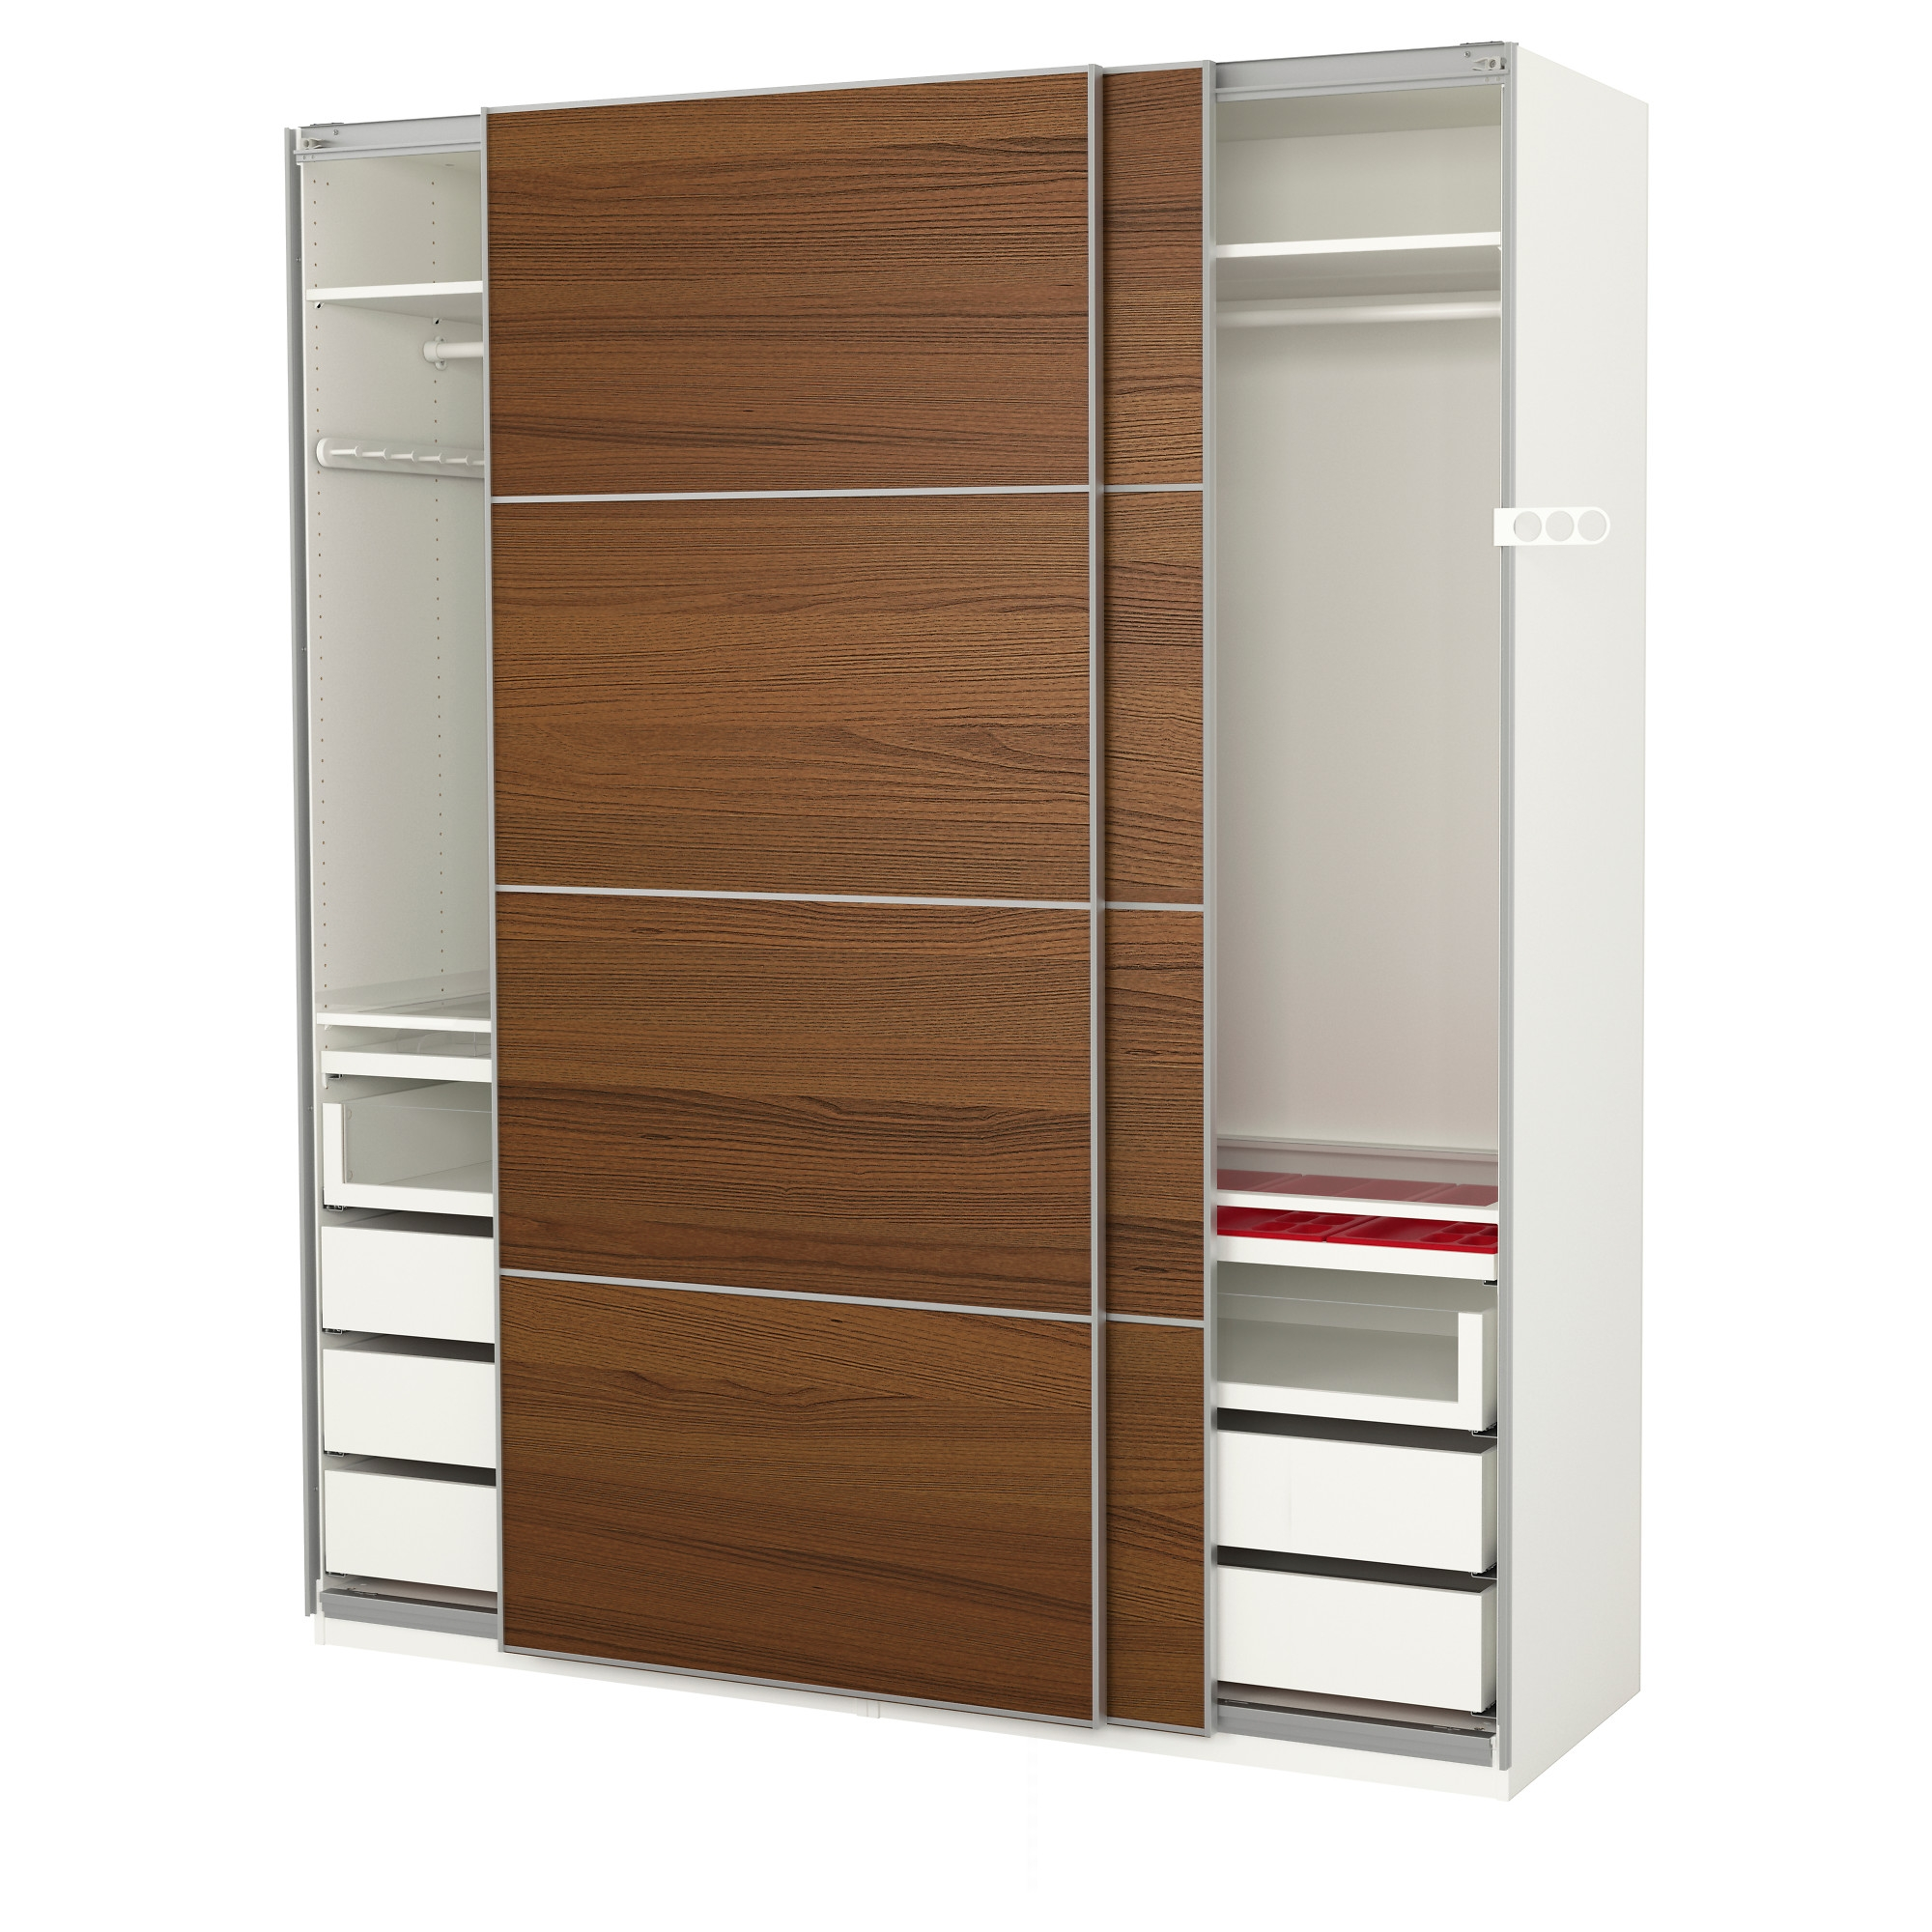 Wardrobes Pax System Ikea Inside Wardrobe With Shelves And Drawers (Image 12 of 15)